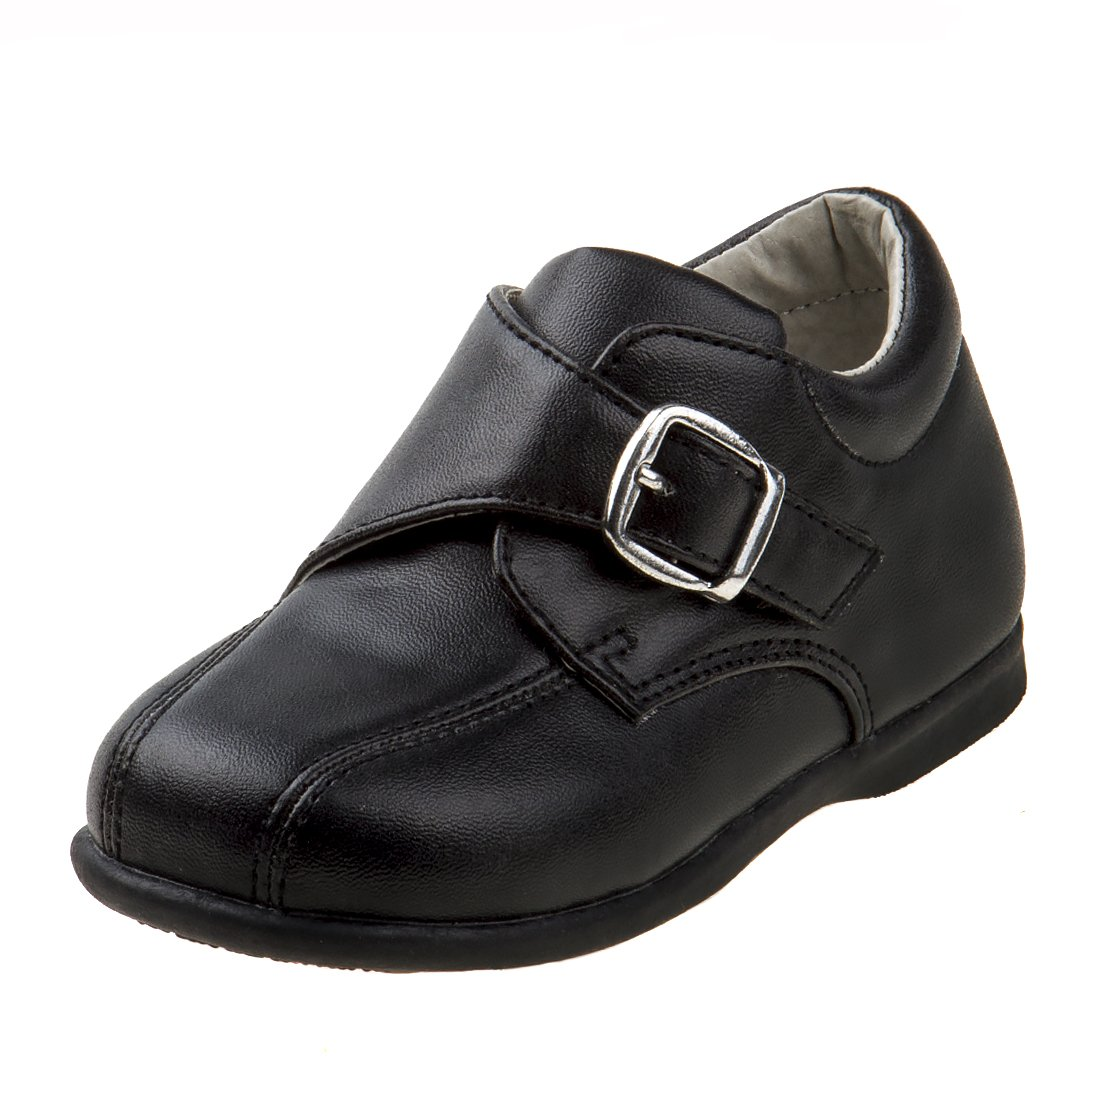 Josmo Boy's Walking Dress Shoe, Black, 4 M US Toddler'